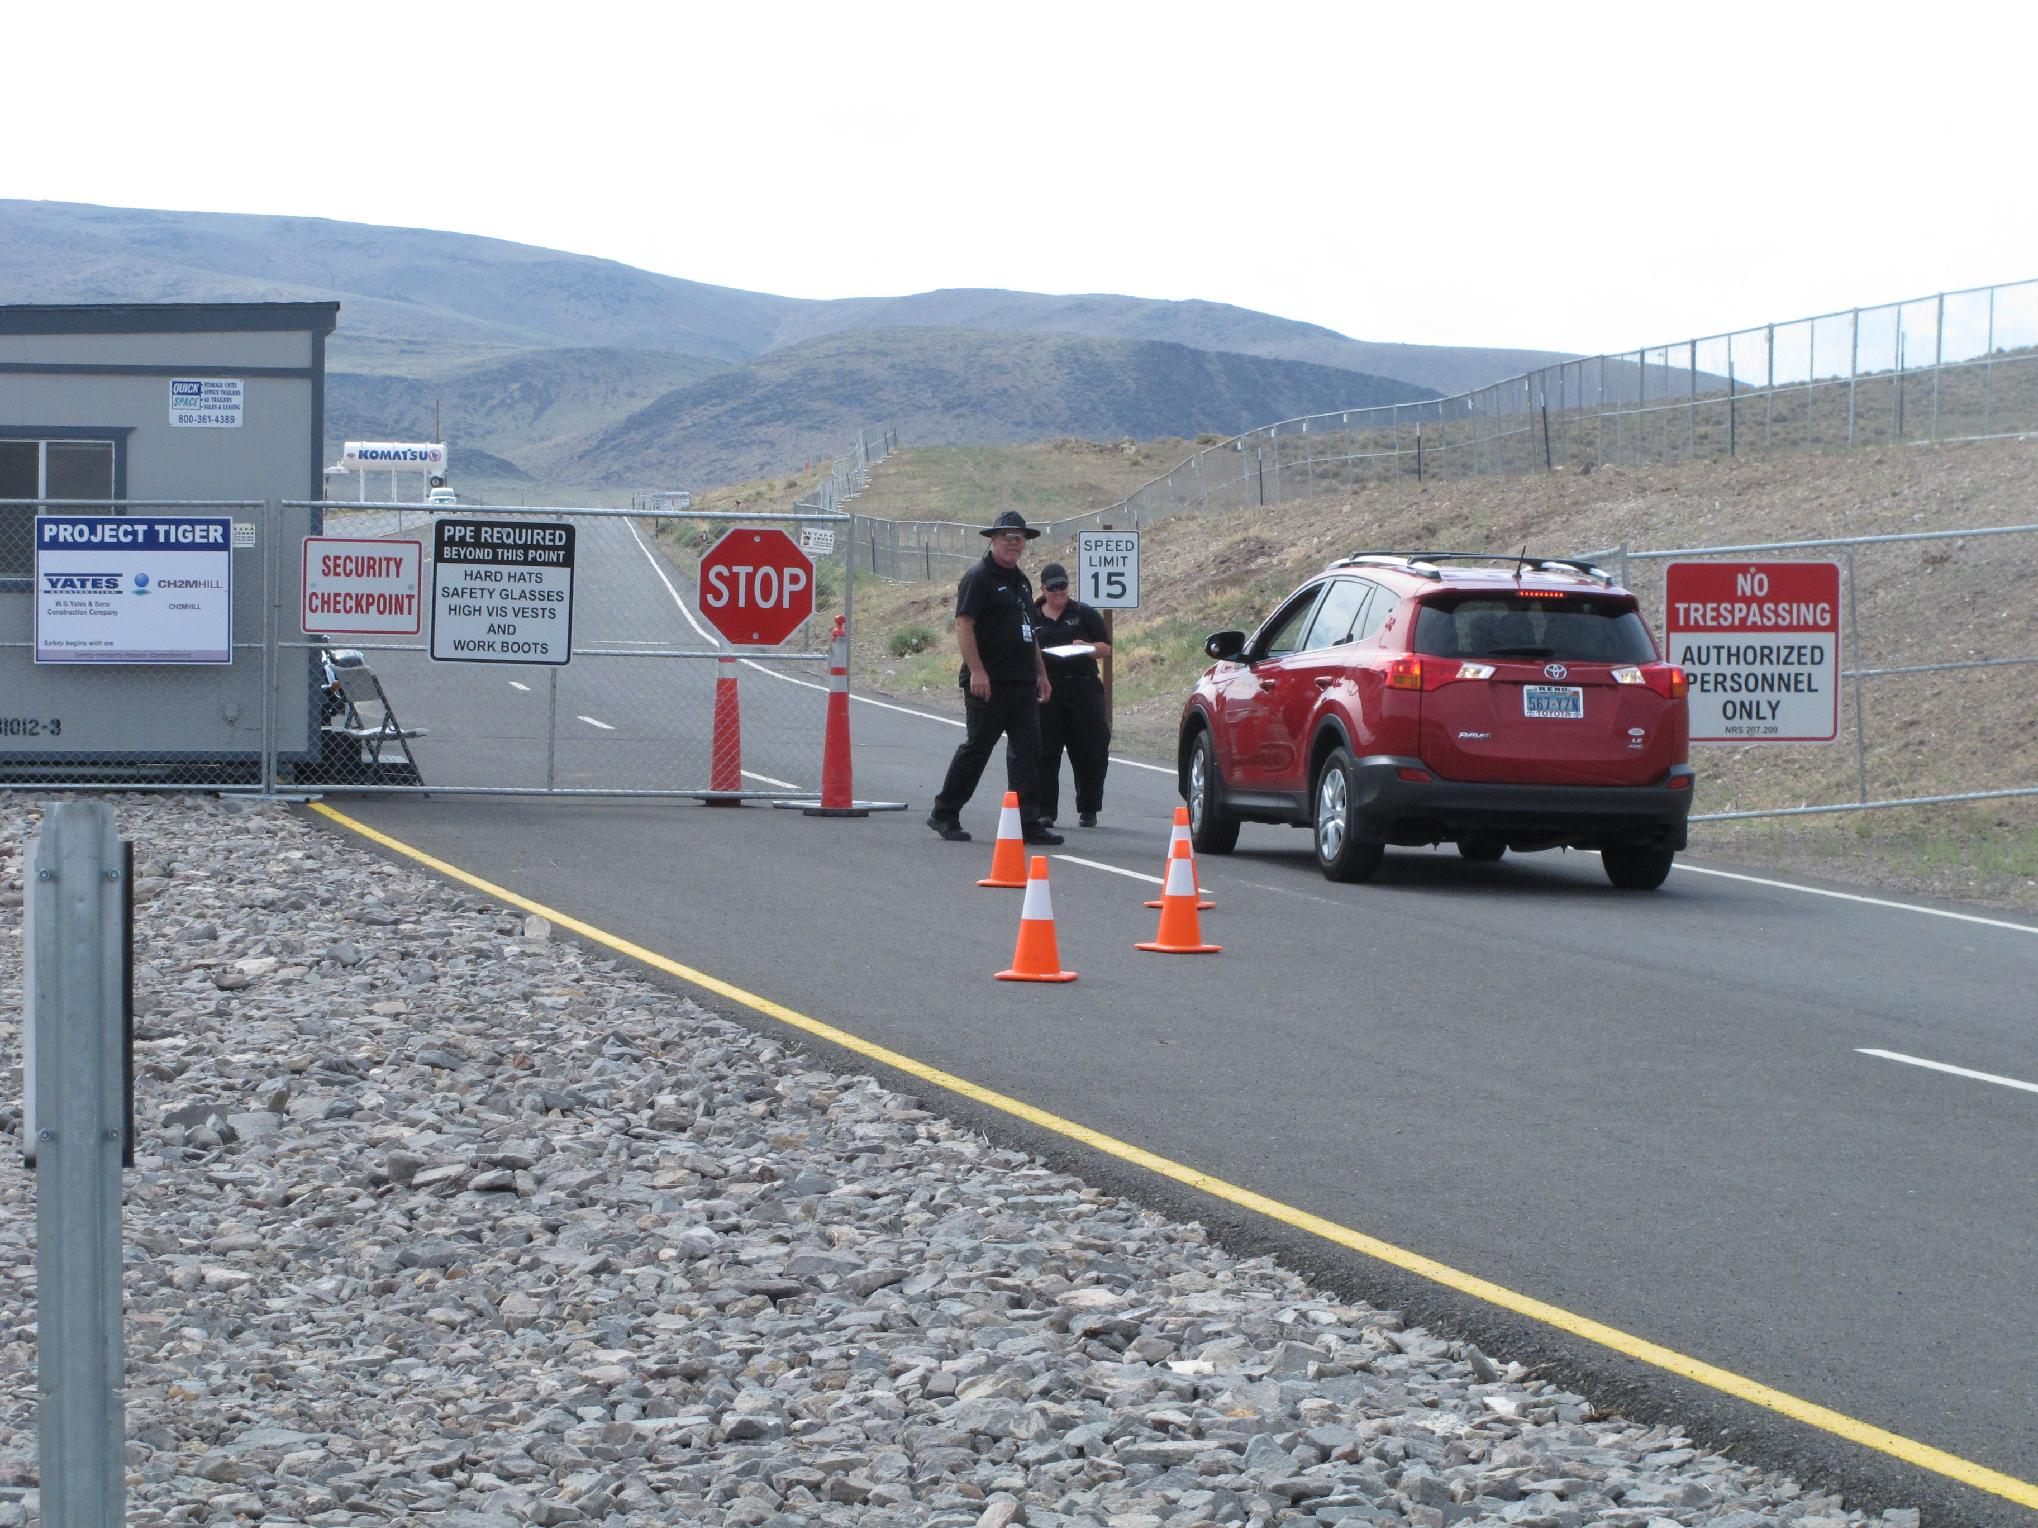 """Security guards stop a car Friday Aug. 1, 2014, at the gate to the site Tahoe Reno Industrial Center about 15 miles east of Reno, Nevada where Tesla Motors has broken ground as one of the possible places to build a $5 billion """"gigafactory'' to make lithium batteries for its electric cars. (AP Photo/Scott Sonner)"""